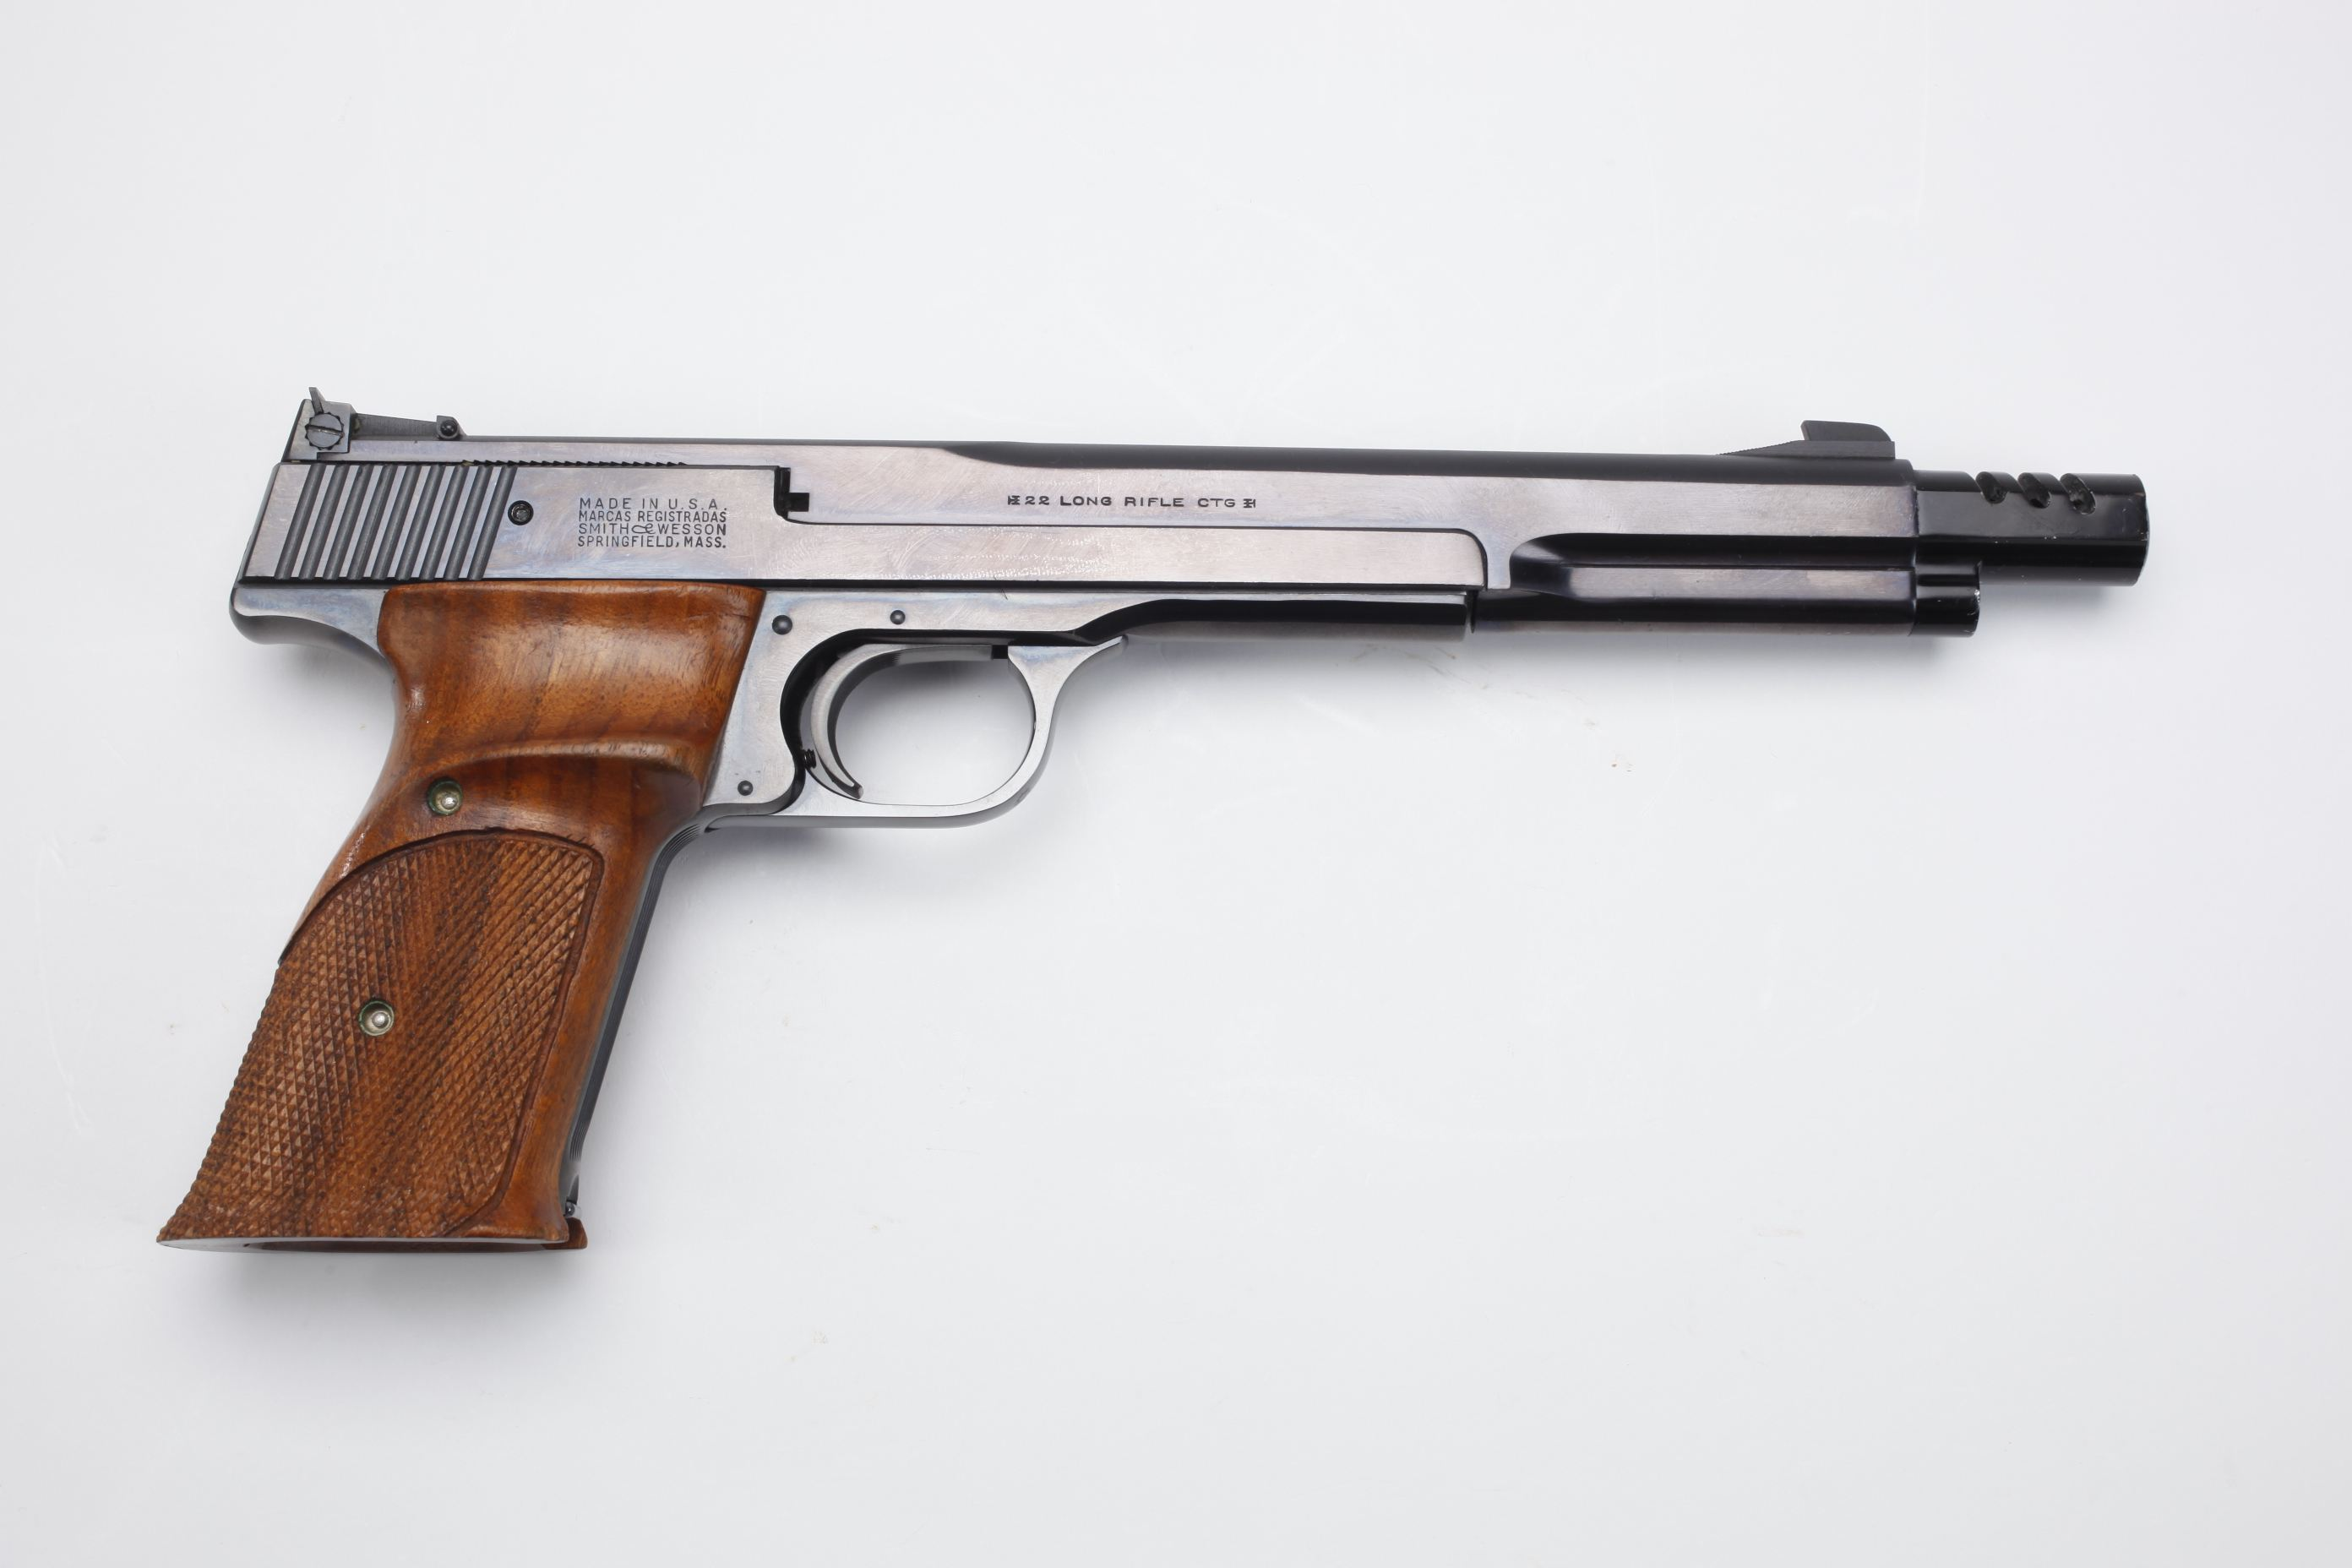 Smith & Wesson Model 41 Semi Automatic Pistol